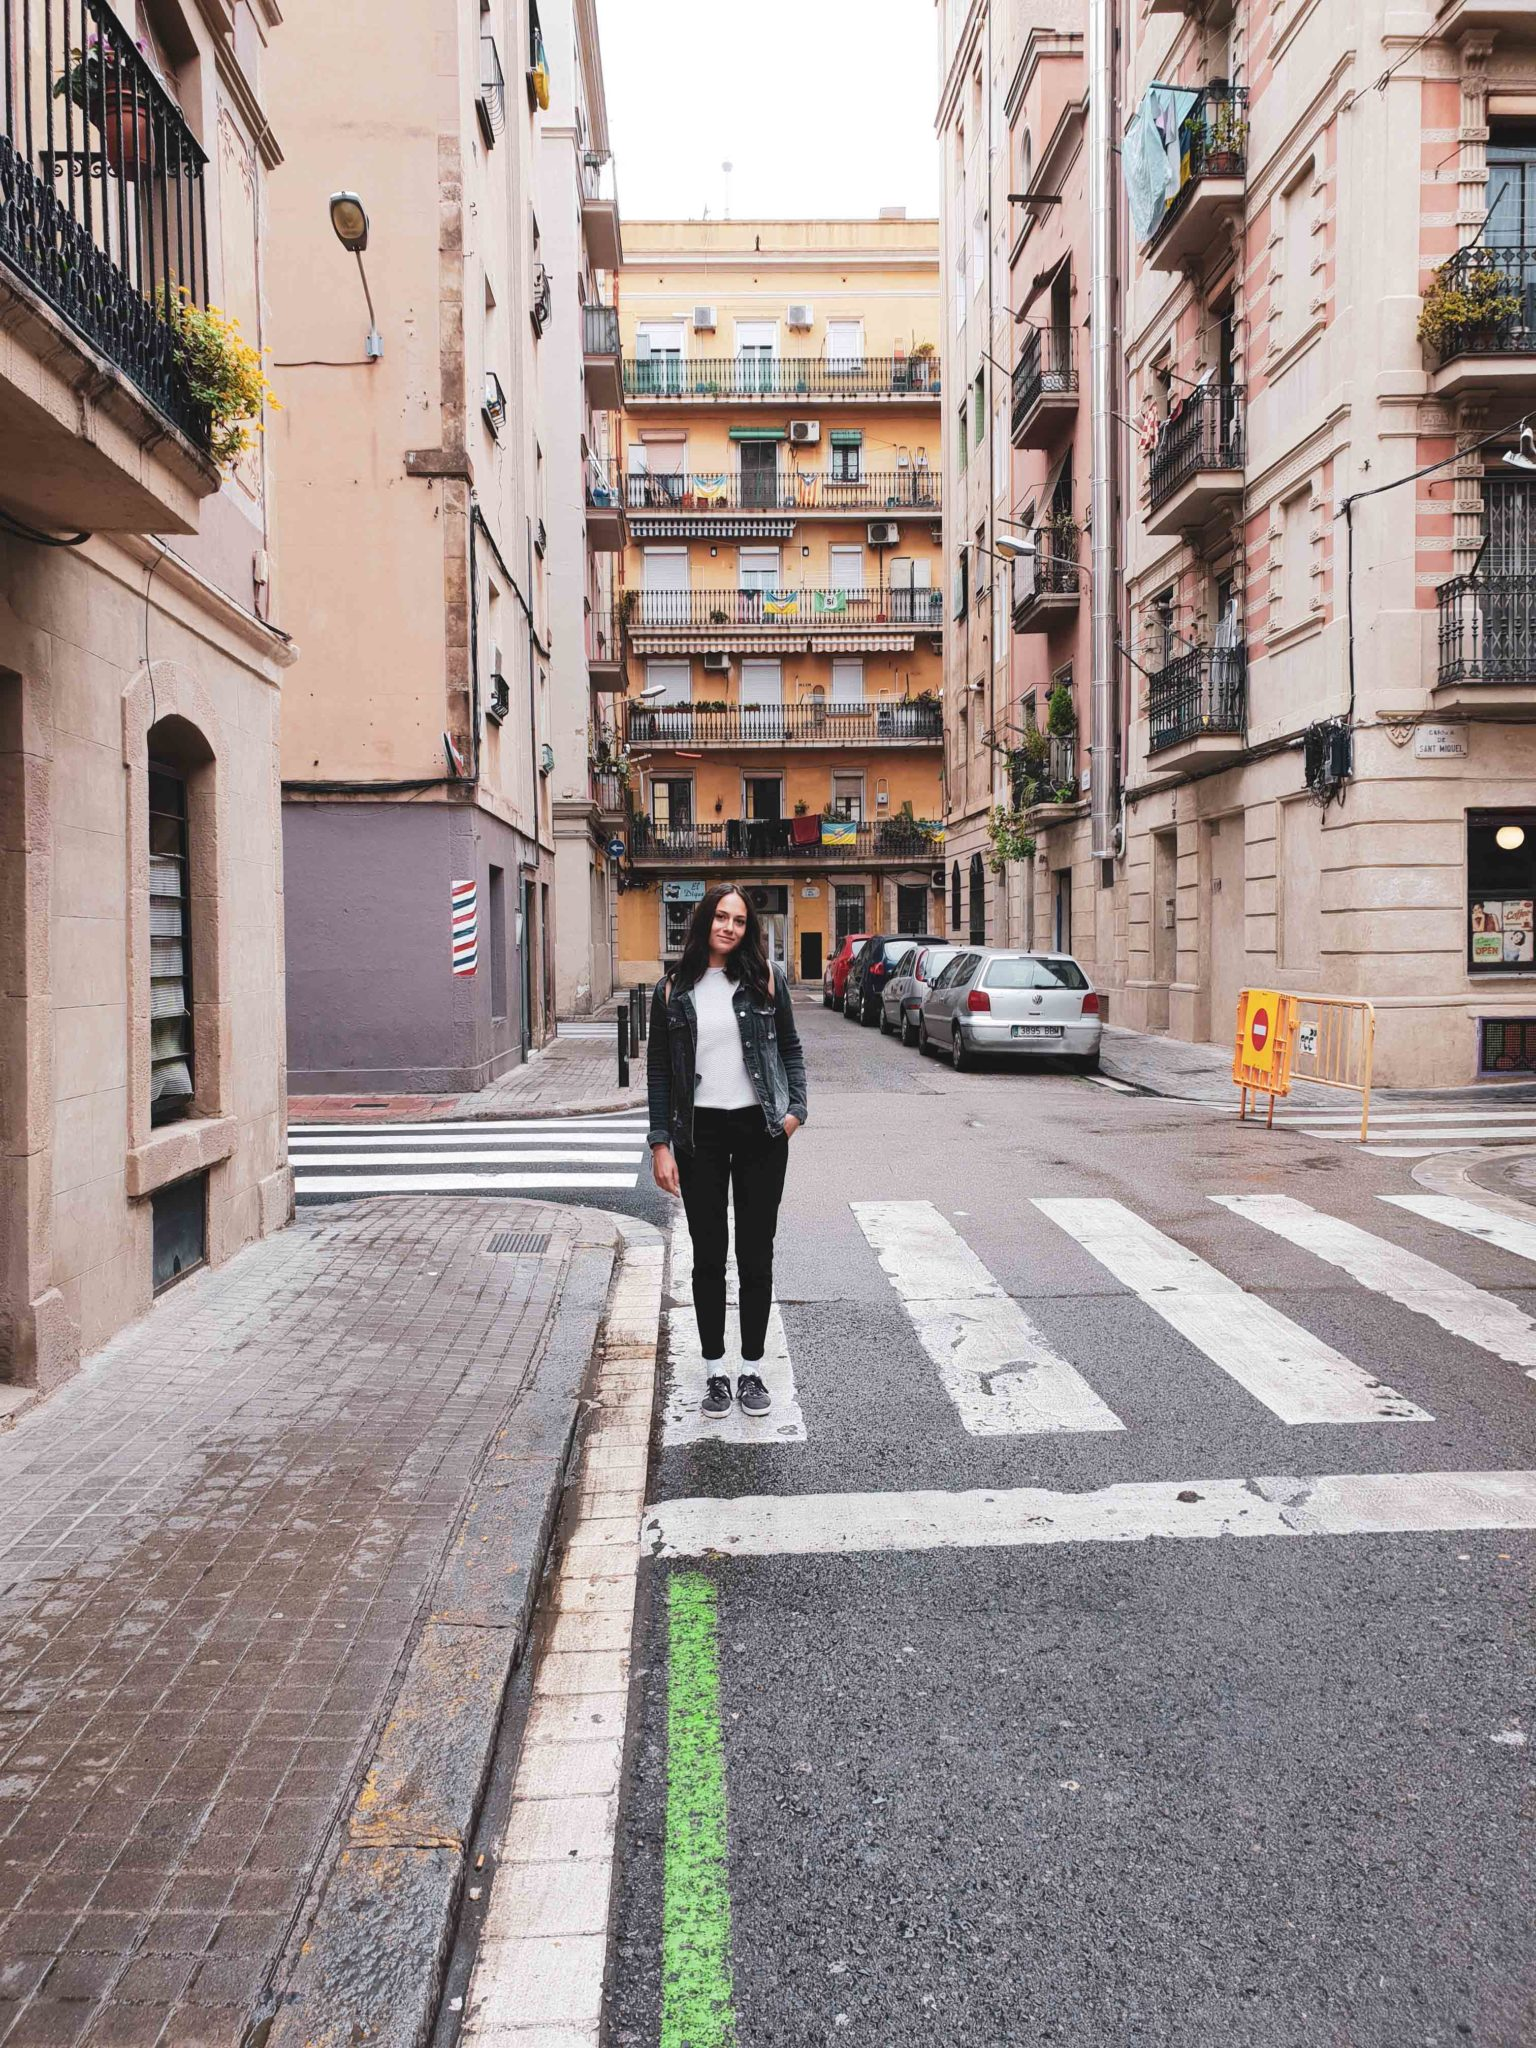 Barcelona travel guide by Michaella and Lina from Bulgarian lifestyle blog Quite a Looker / La Barceloneta